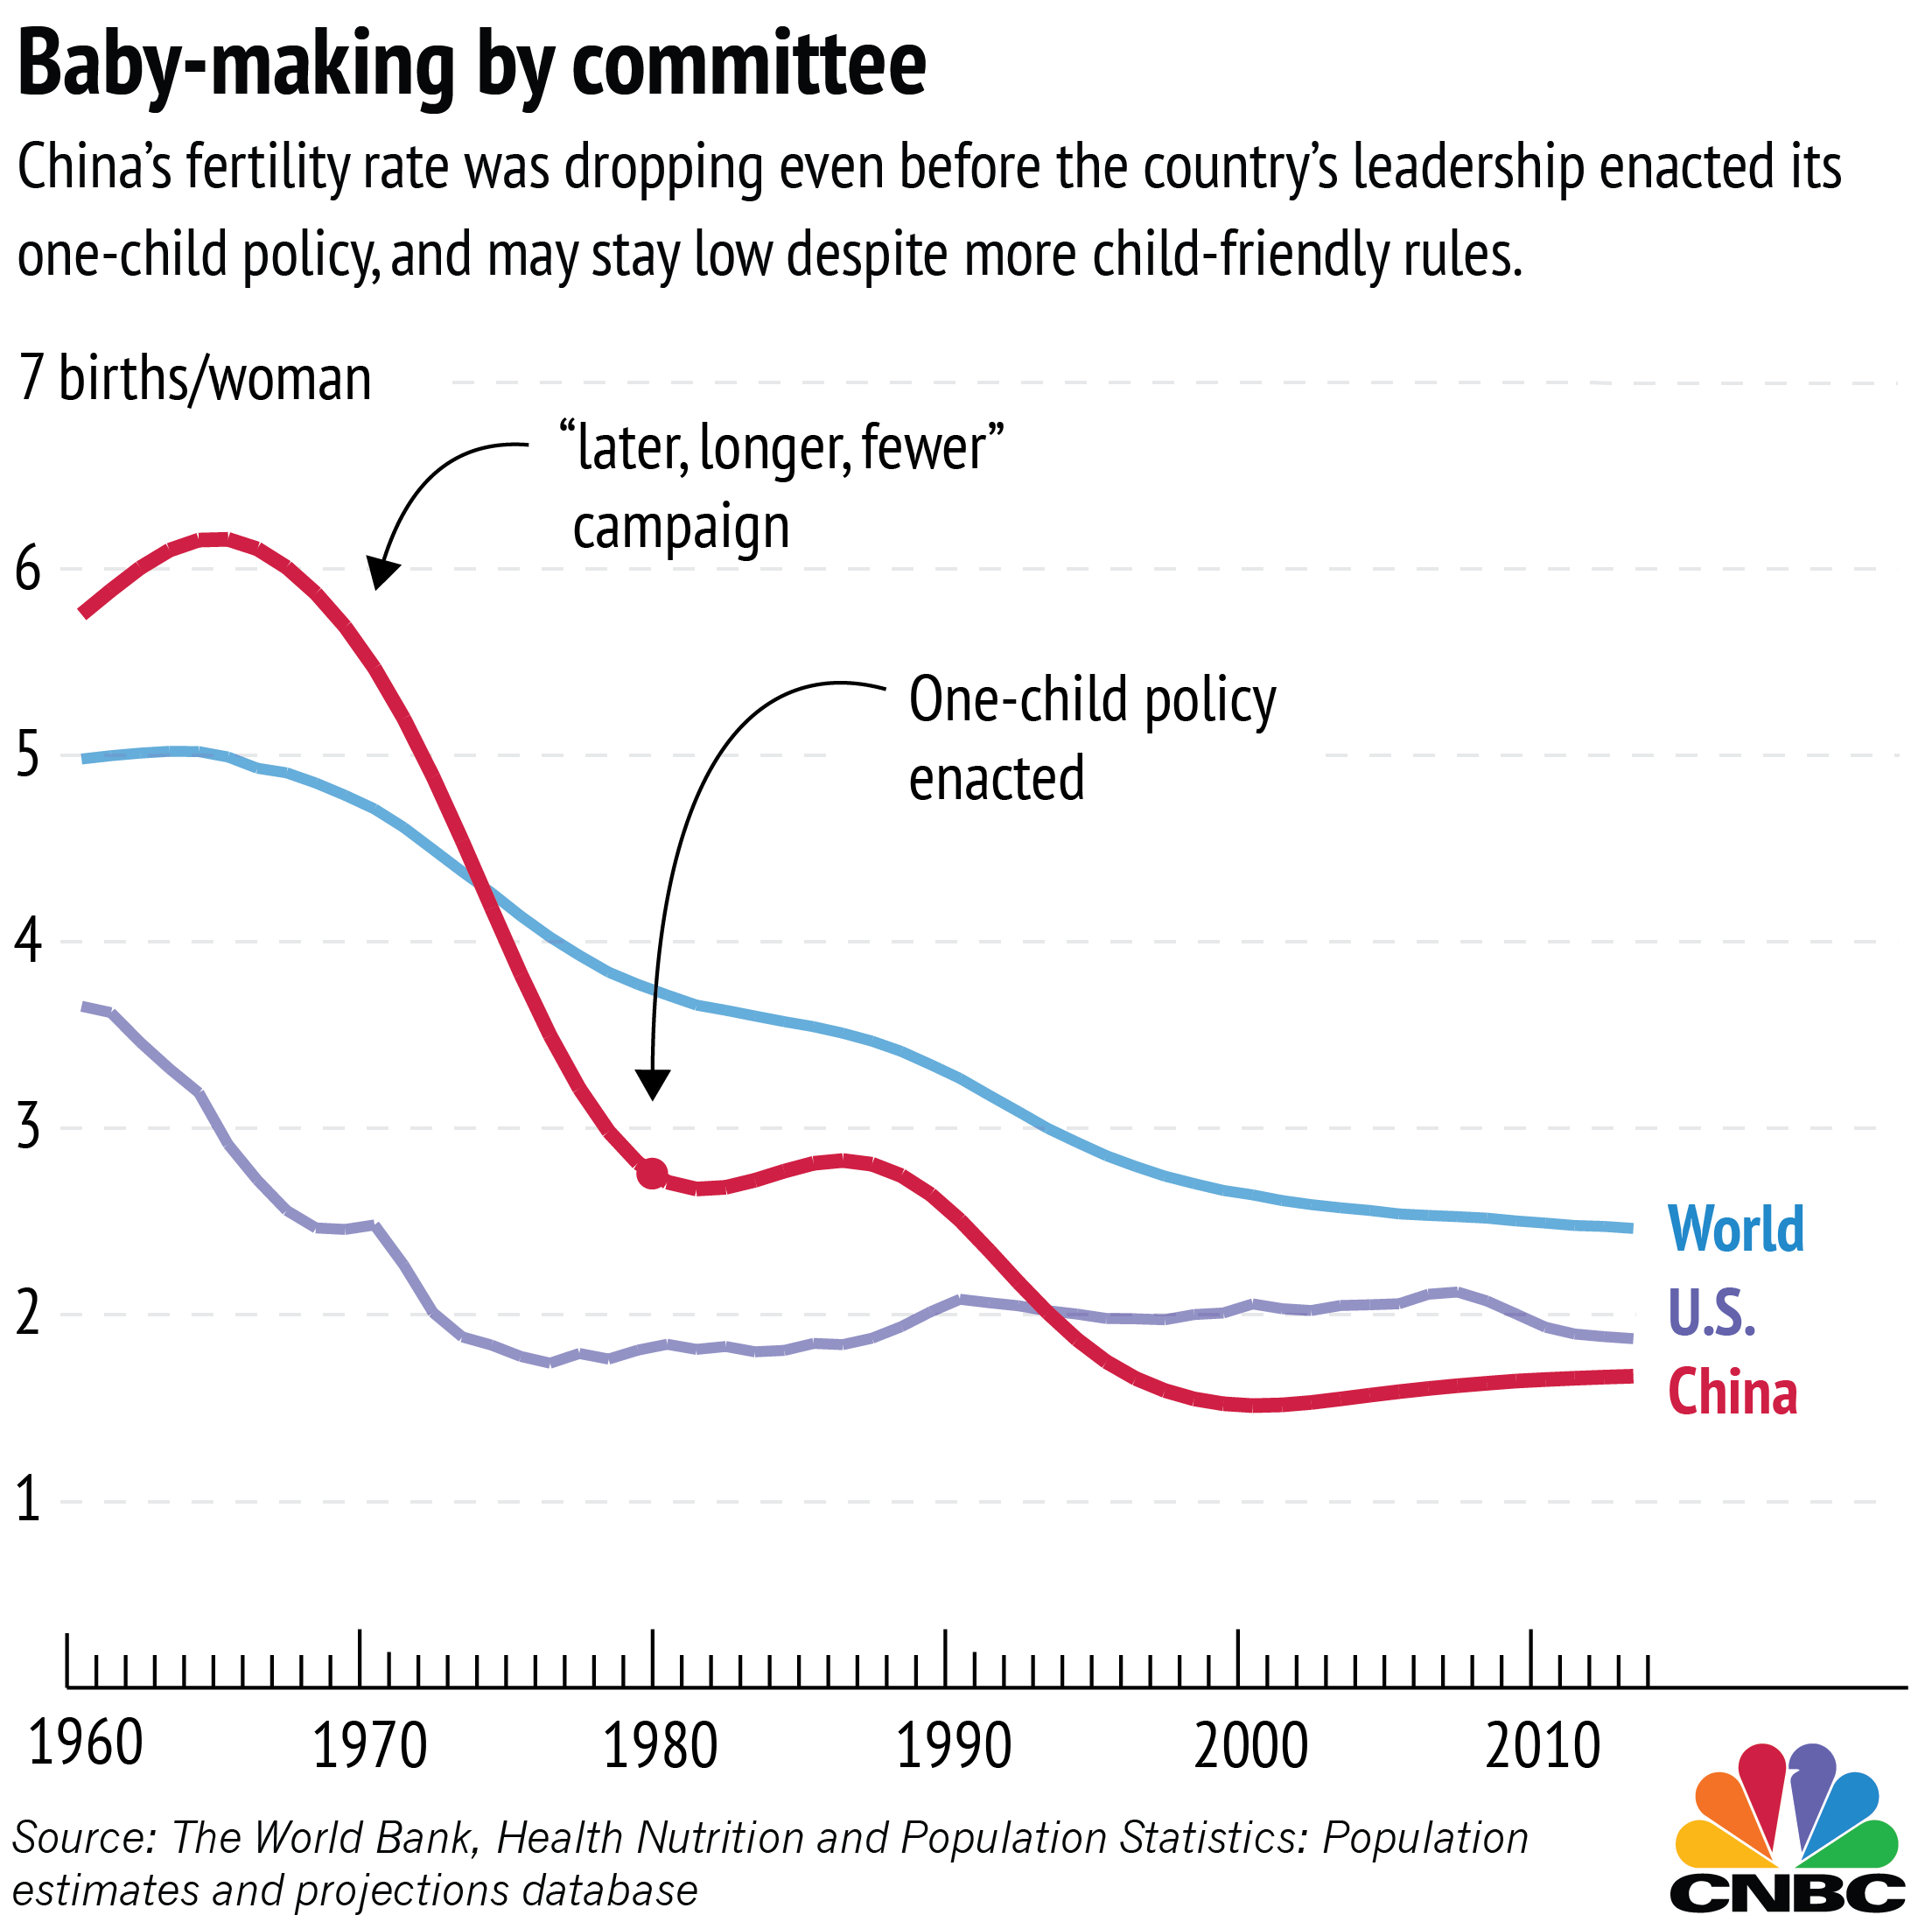 evaluate effectiveness china s one child policy Published: mon, 5 dec 2016 the one-child policy helped china to raise its economic growth in the past decades china was able to control the rate of the population growth lower than the rate of the gdp growth, and thus the gdp per capita increases dramatically in the past decades.